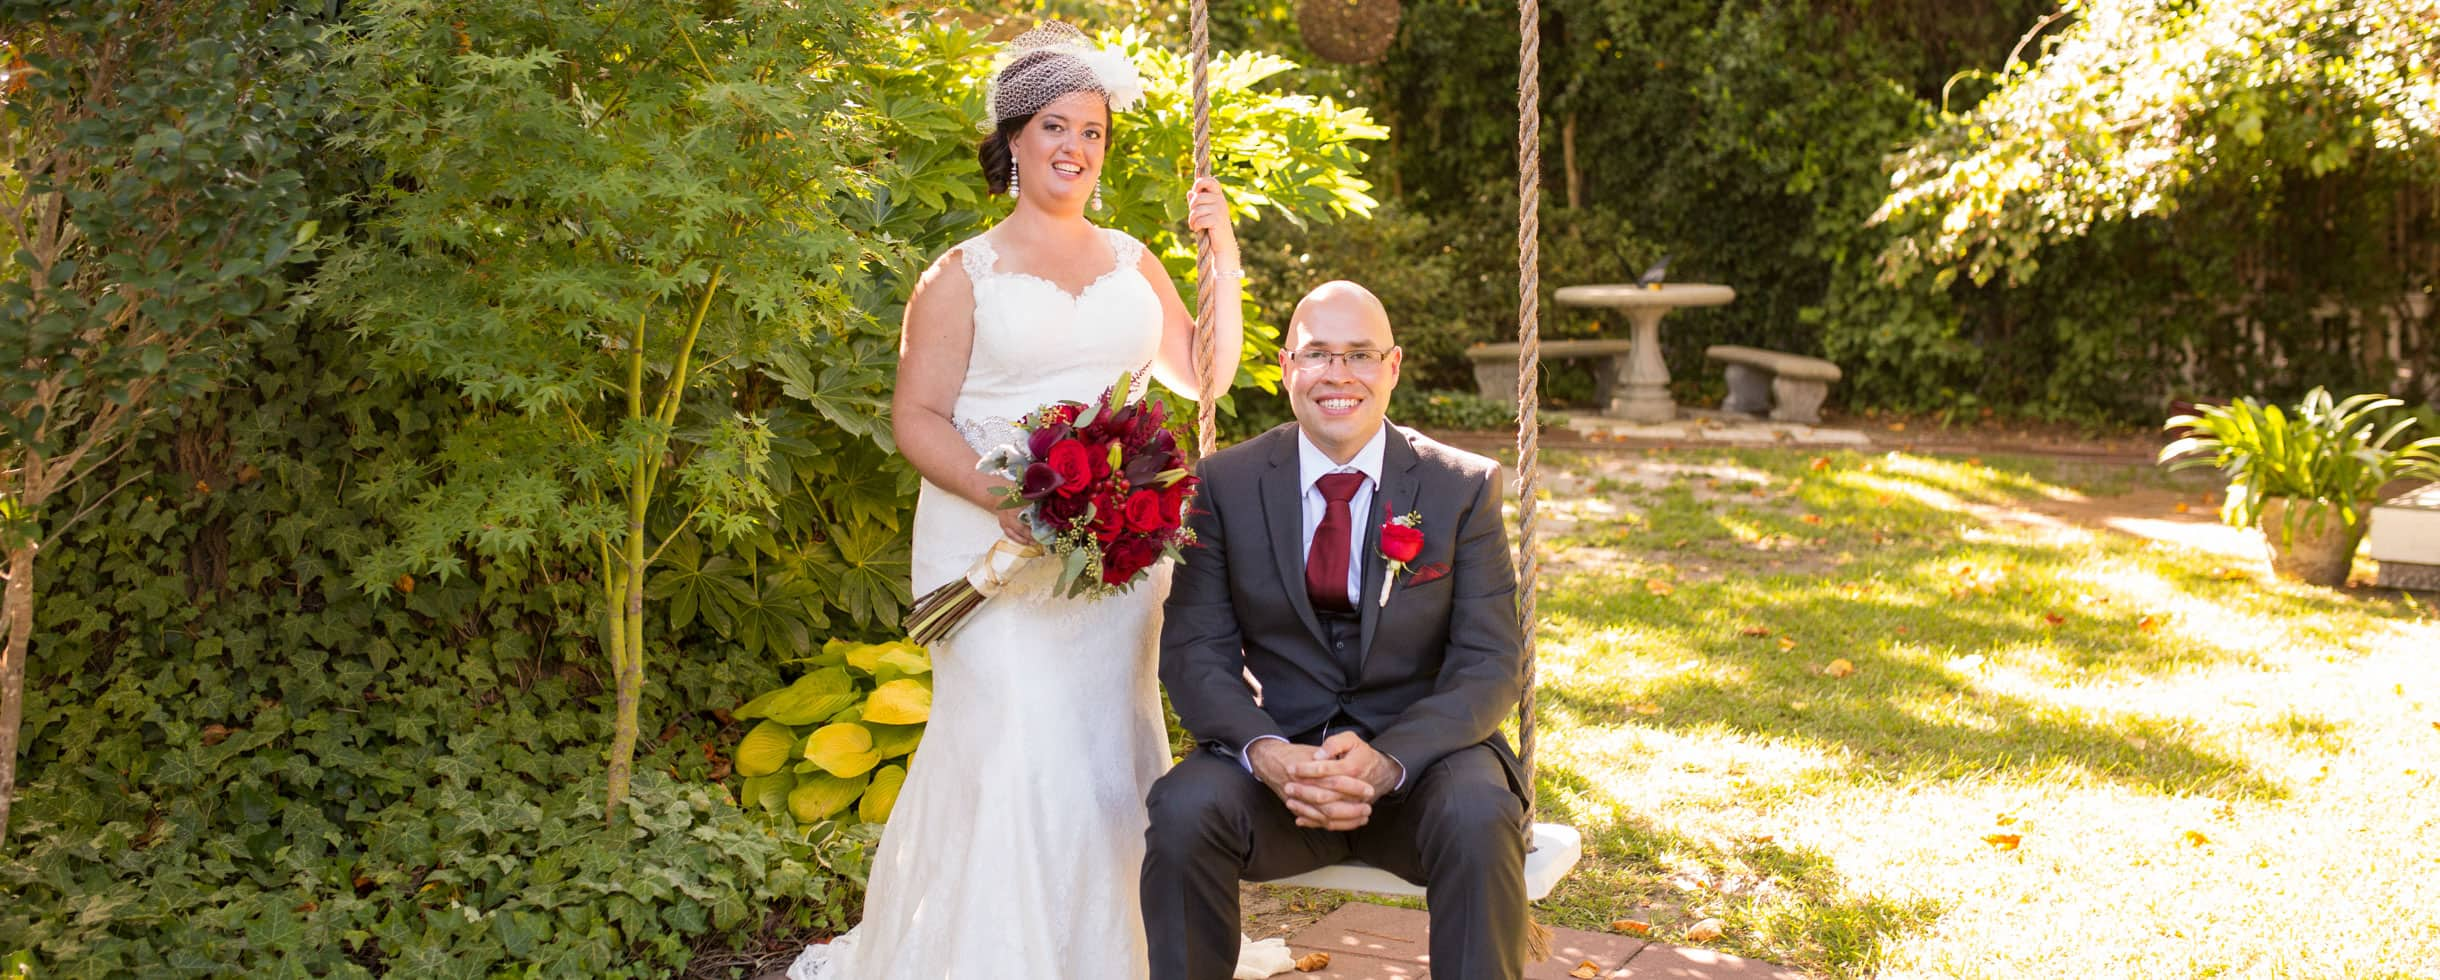 Bride standing next to her groom on a rope swing